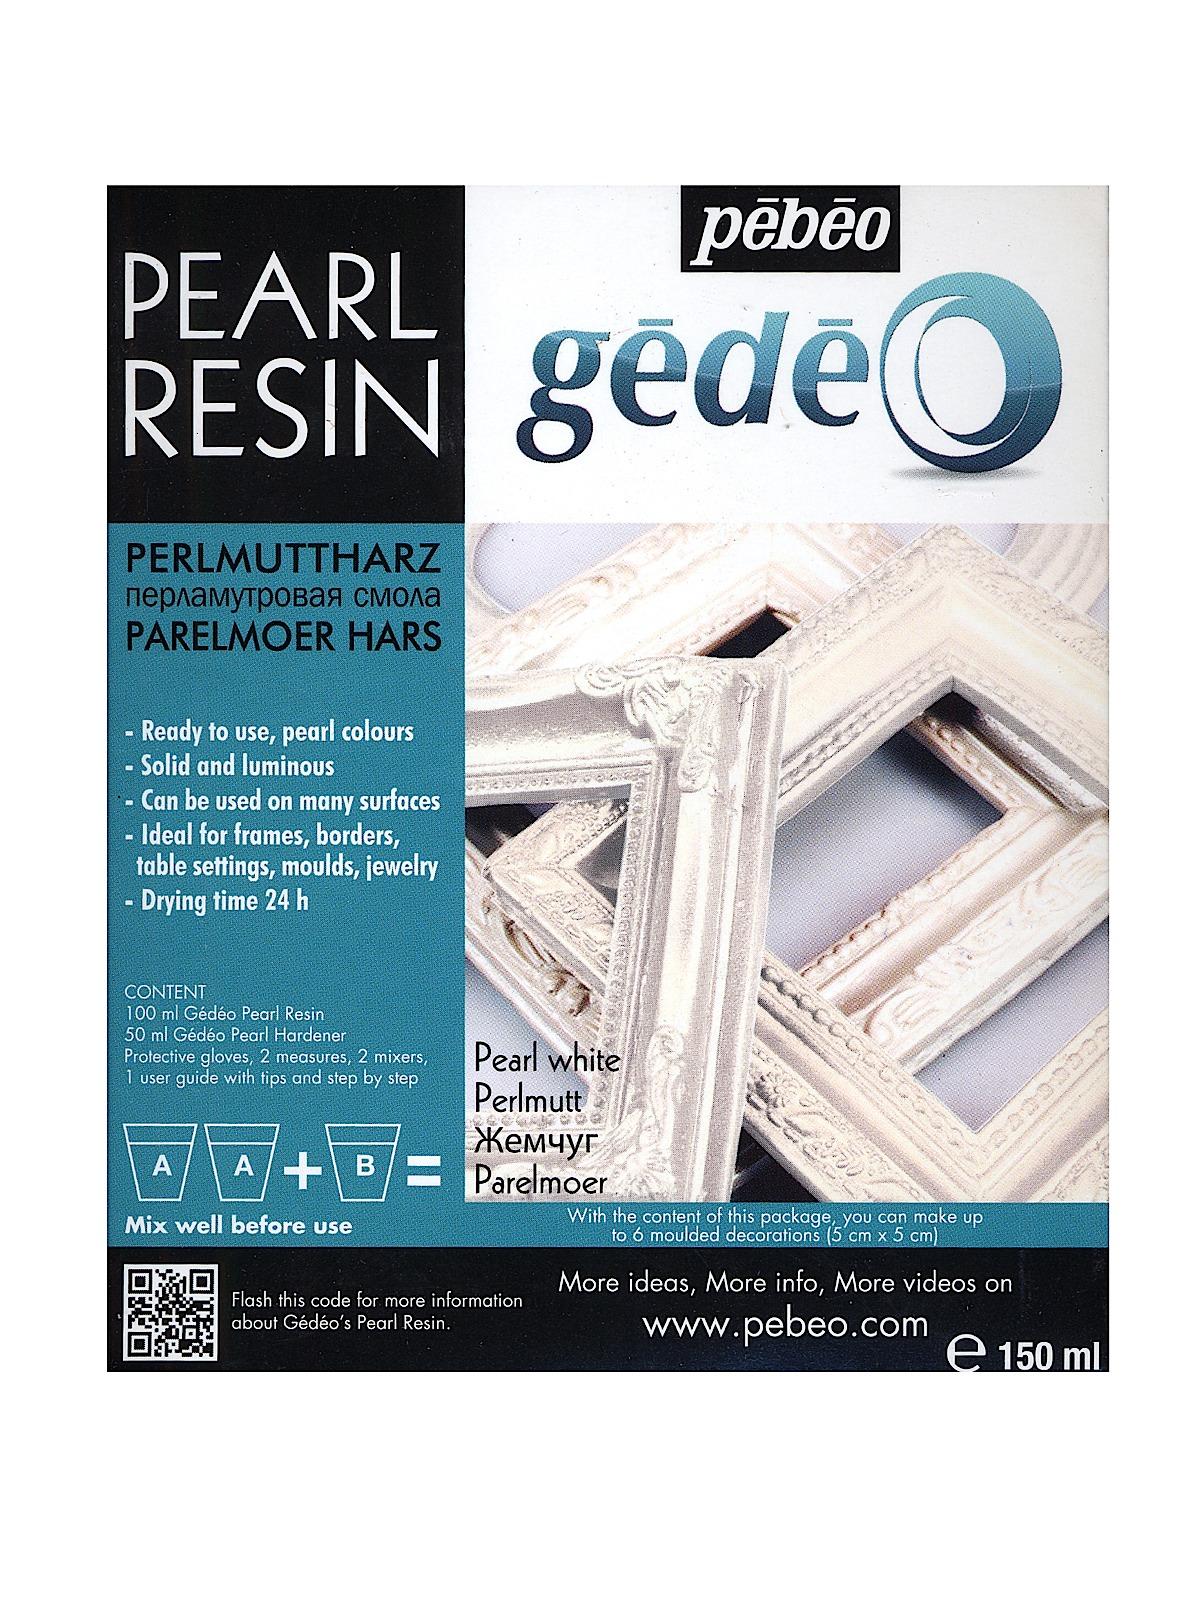 Gedeo Pearl Resins